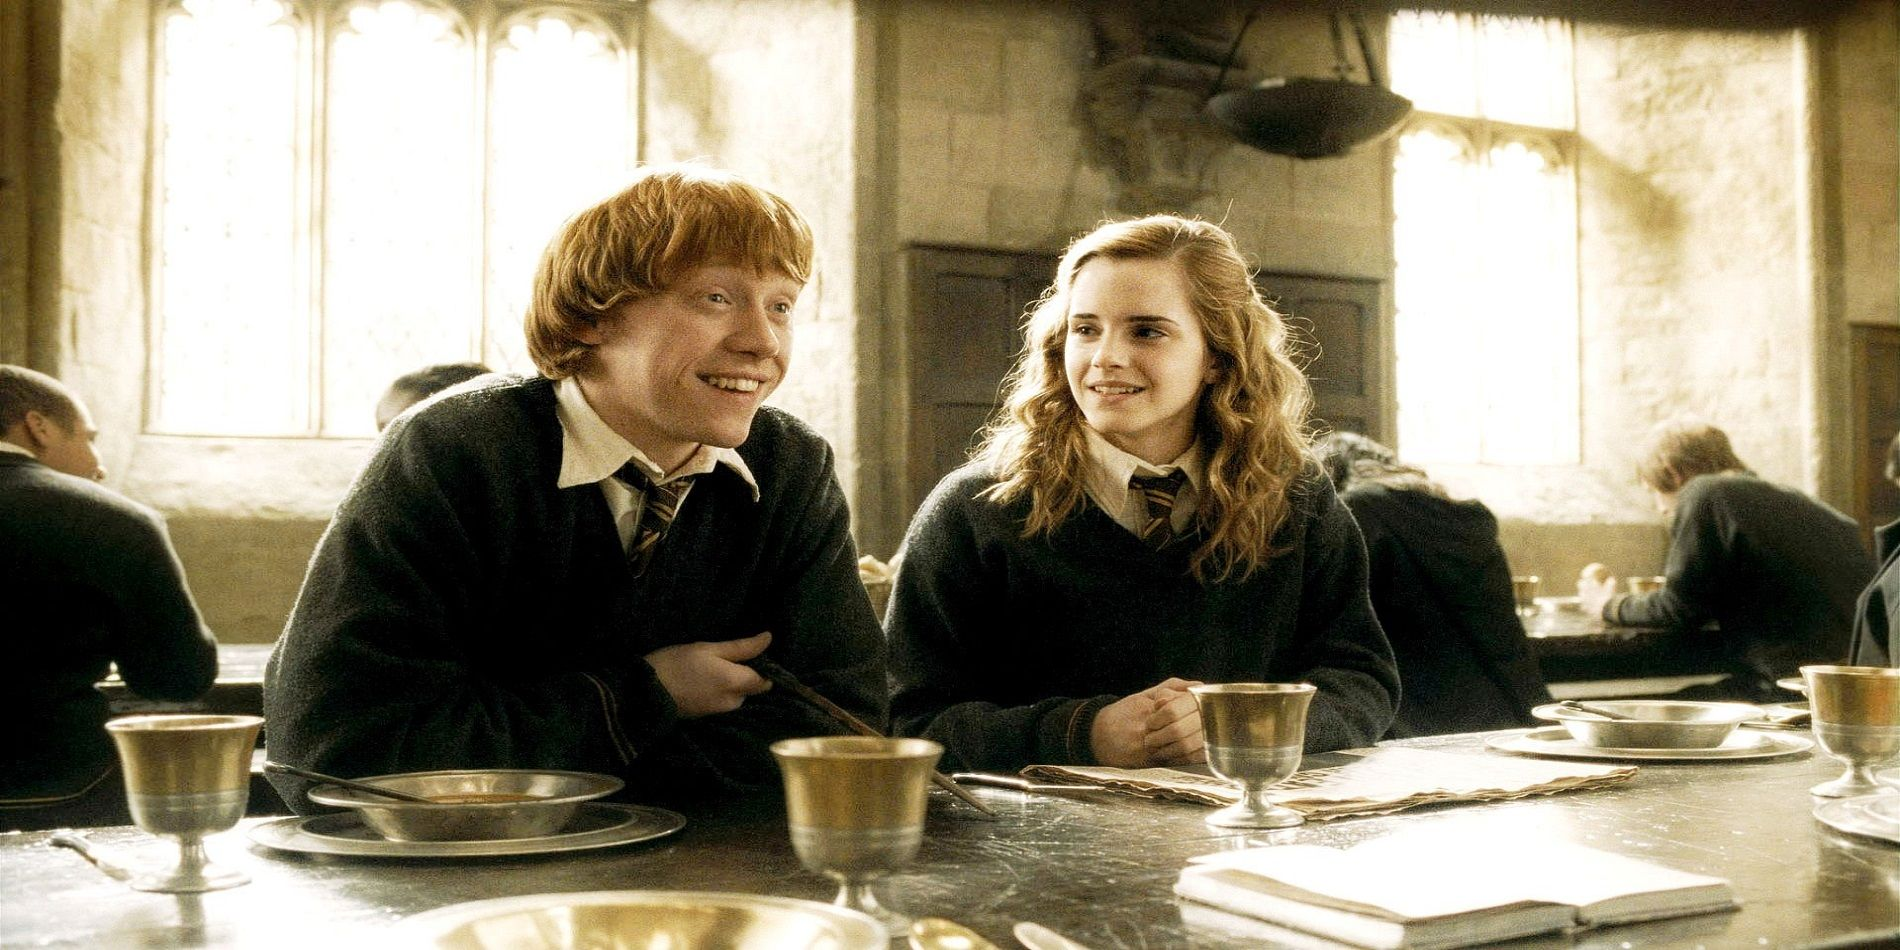 do ron and hermione dating in the half blood prince